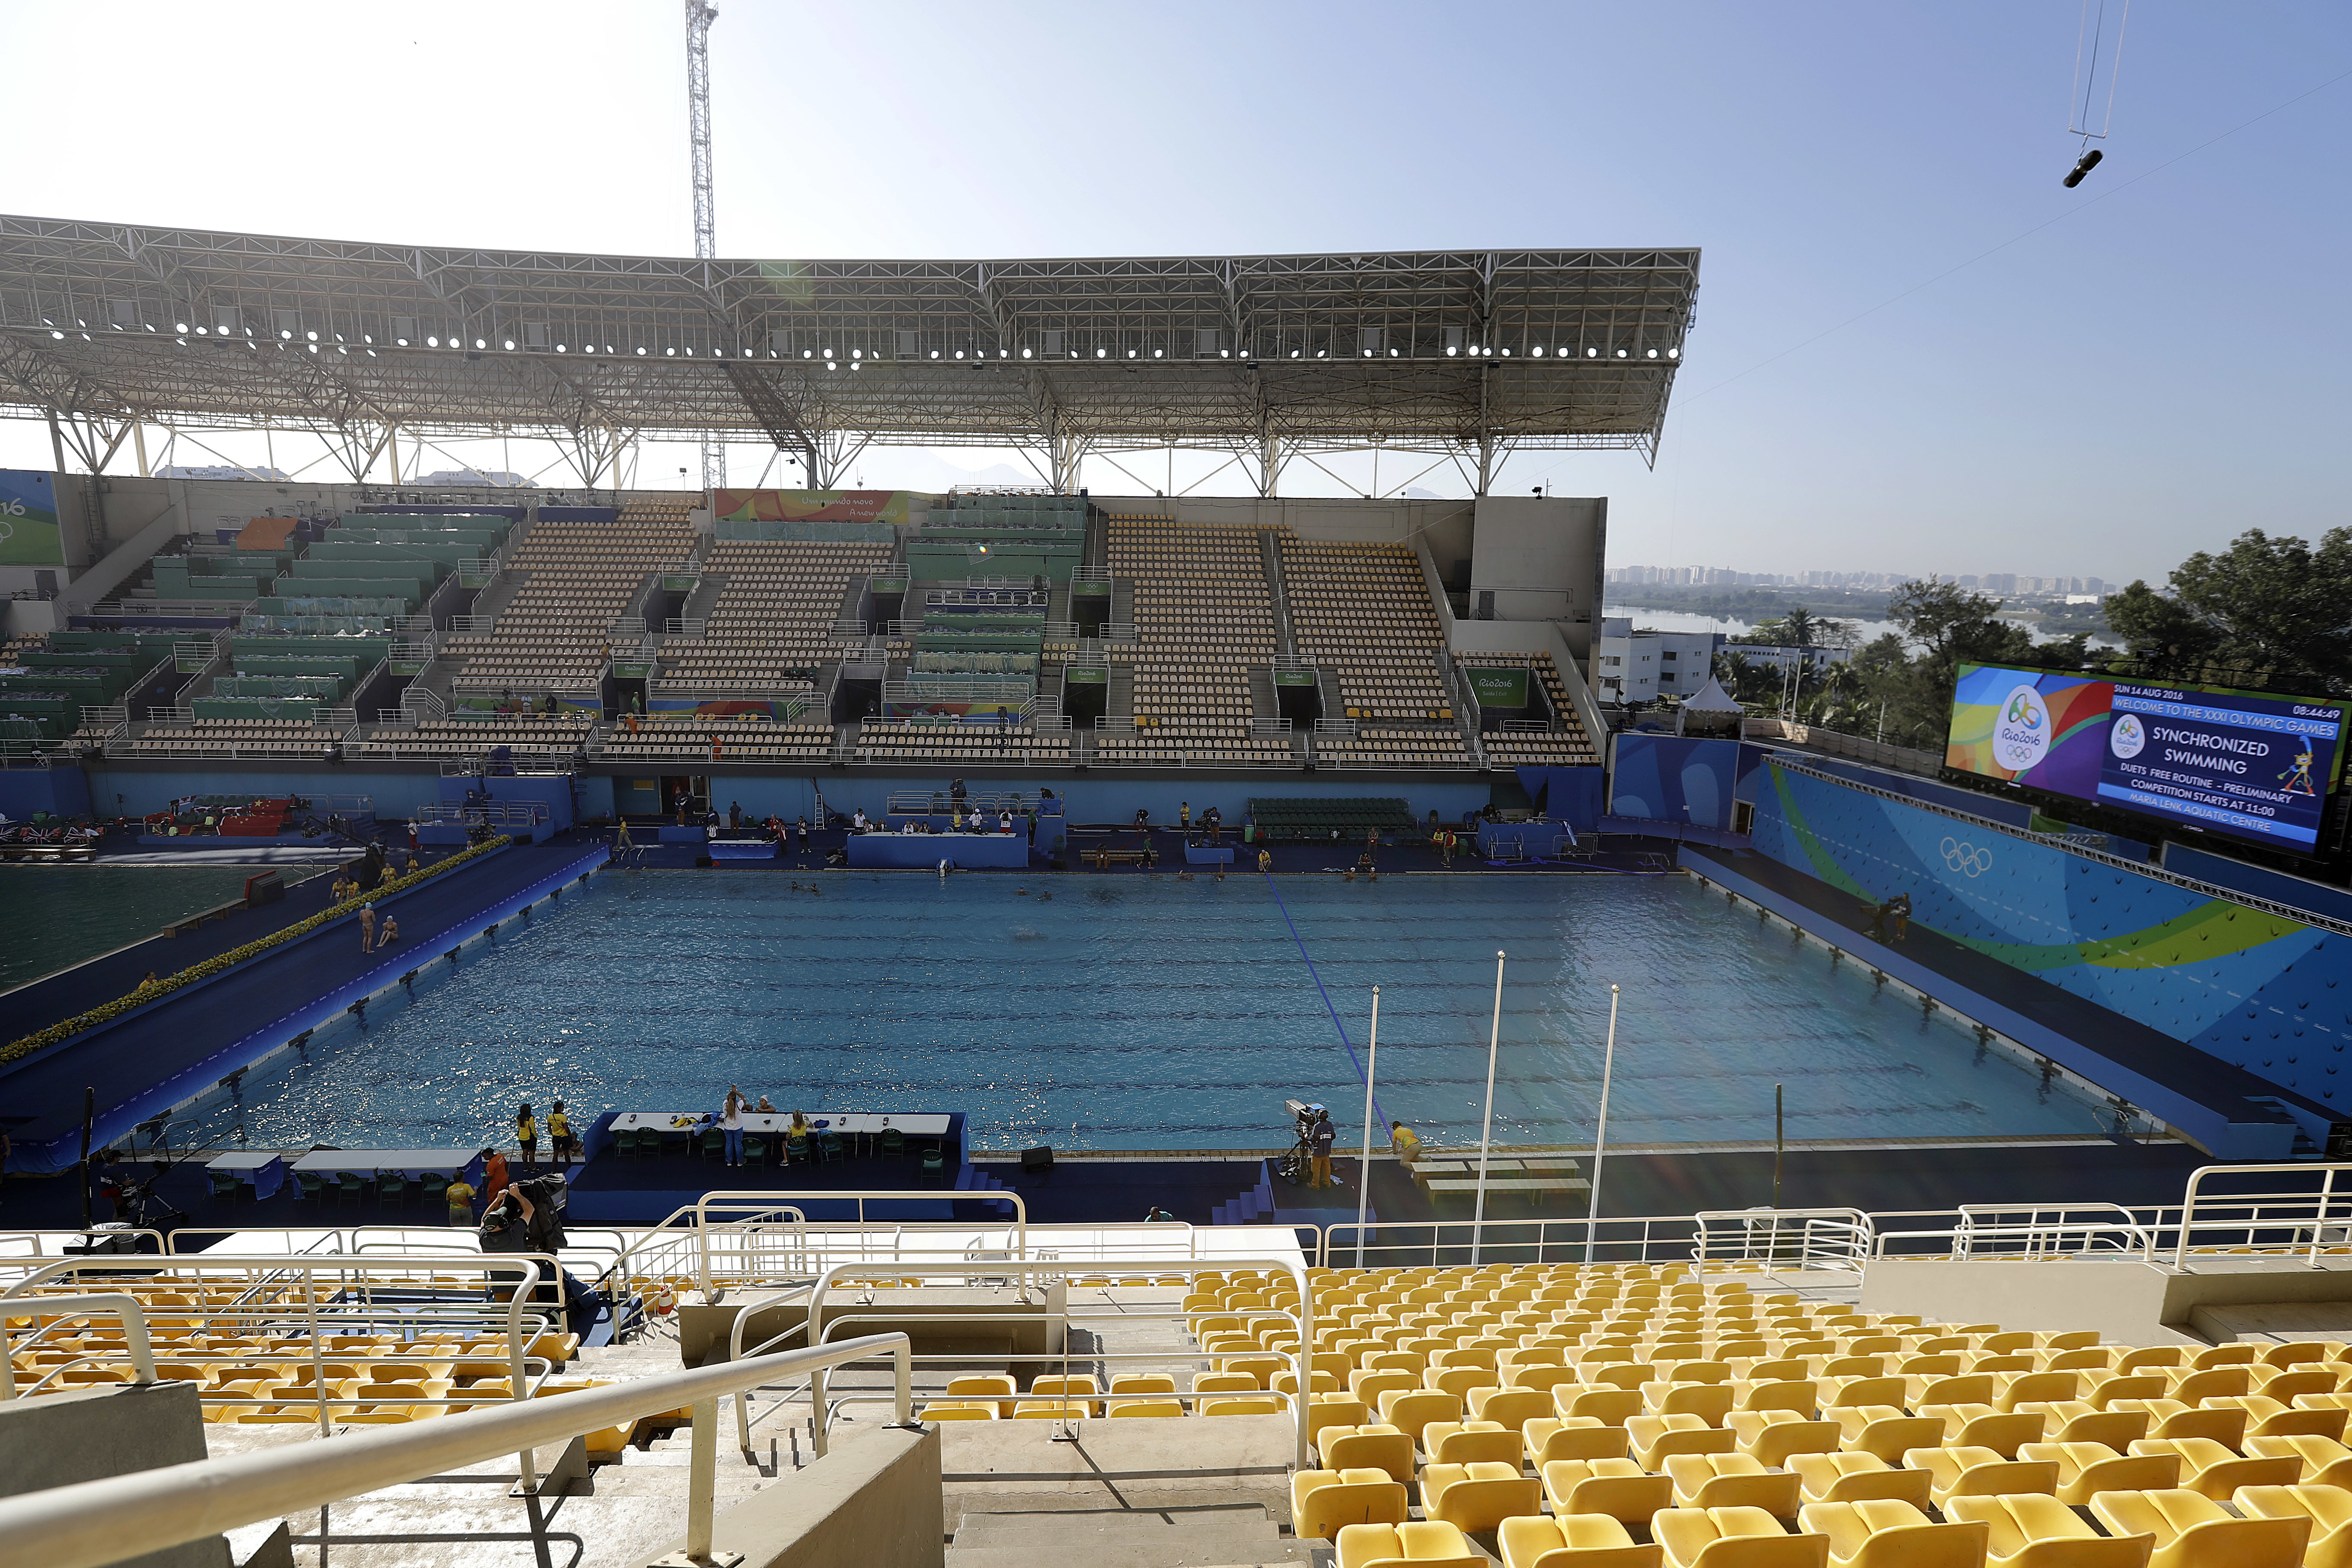 The pool in the Lenk Aquatic Center where the 2016 Summer Olympics synchronized swimming competition is held, is photographed after going through a change in water overnight, on Sunday, Aug. 14, 2016 in Rio de Janeiro, Brazil. Olympic officials gave up on